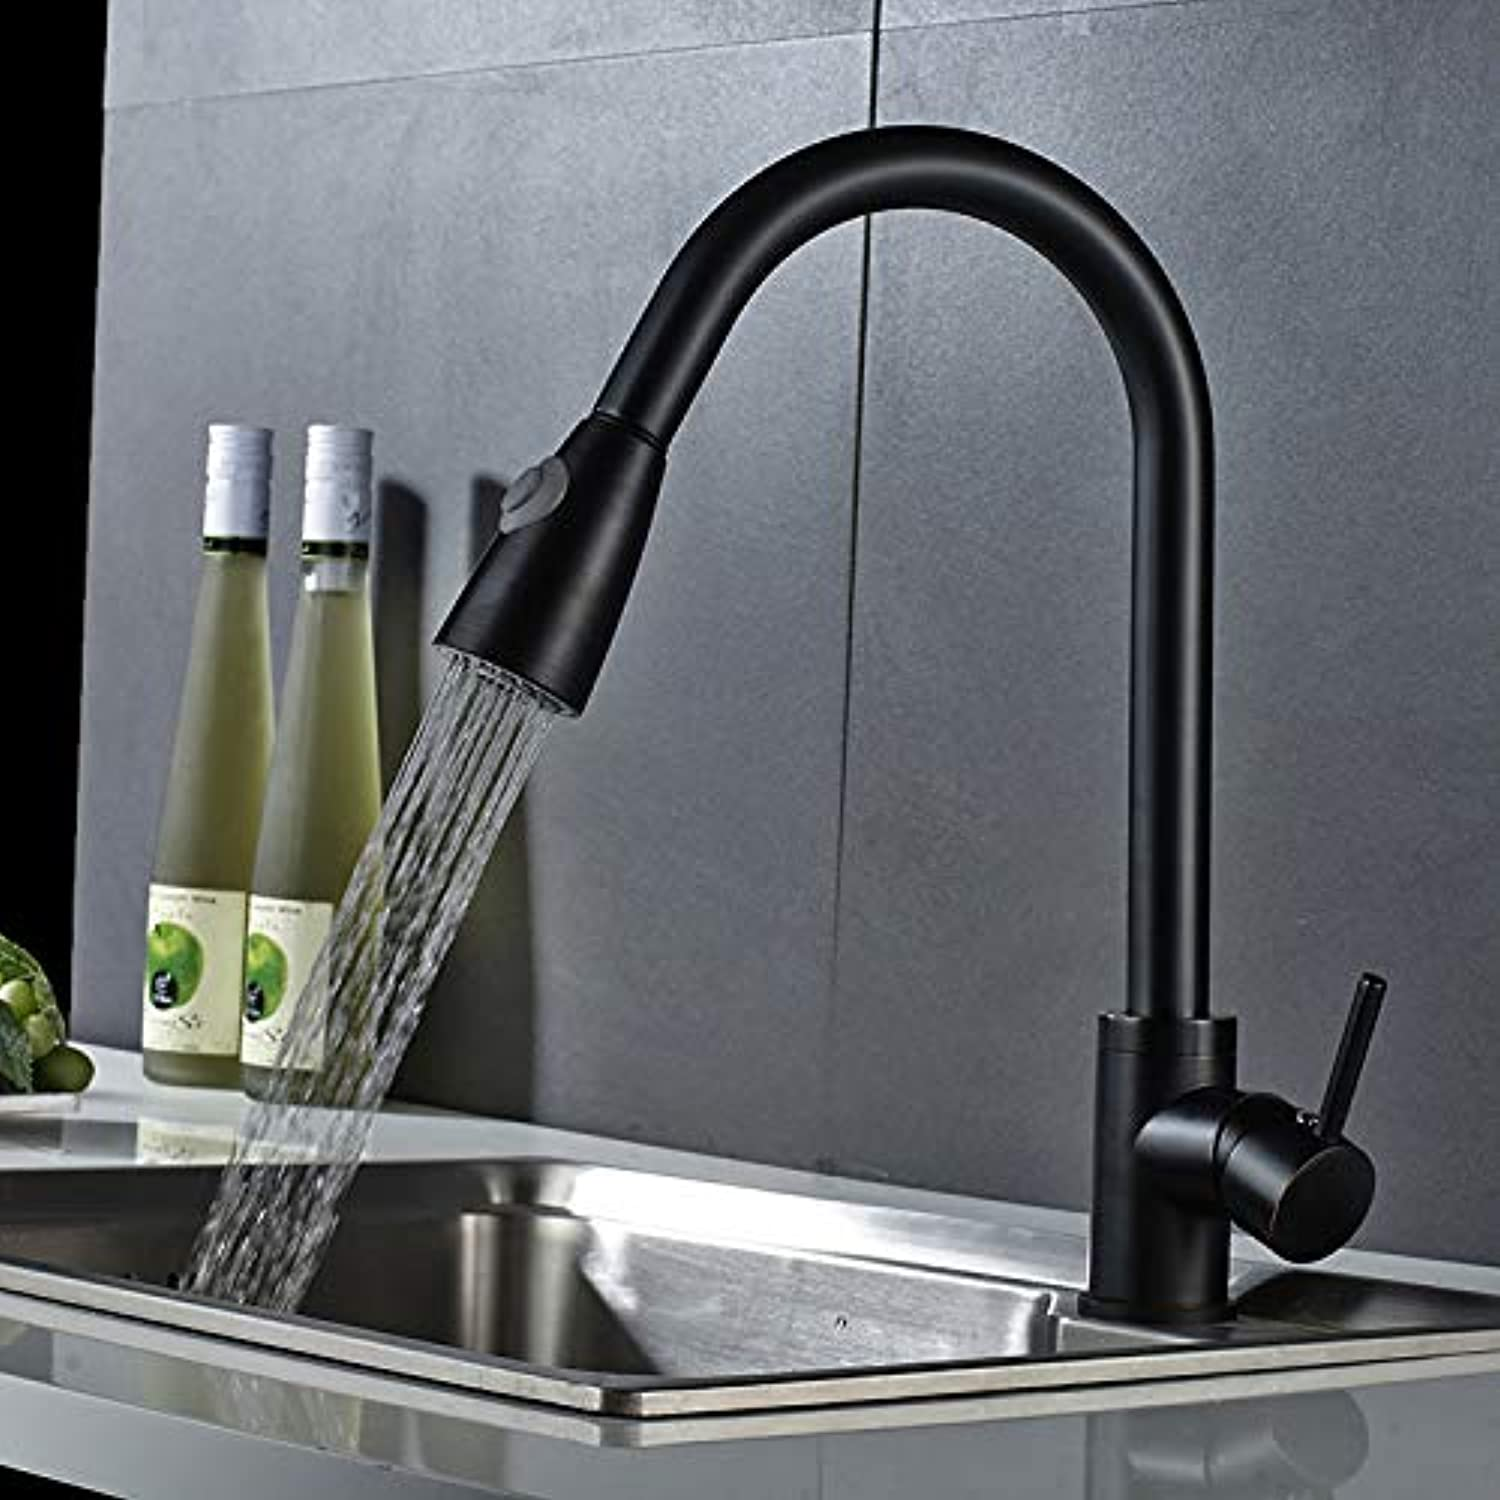 Copper Pull Kitchen hot and Cold Water Faucet Sink Pull Telescopic Sink Universal Swivel Sink